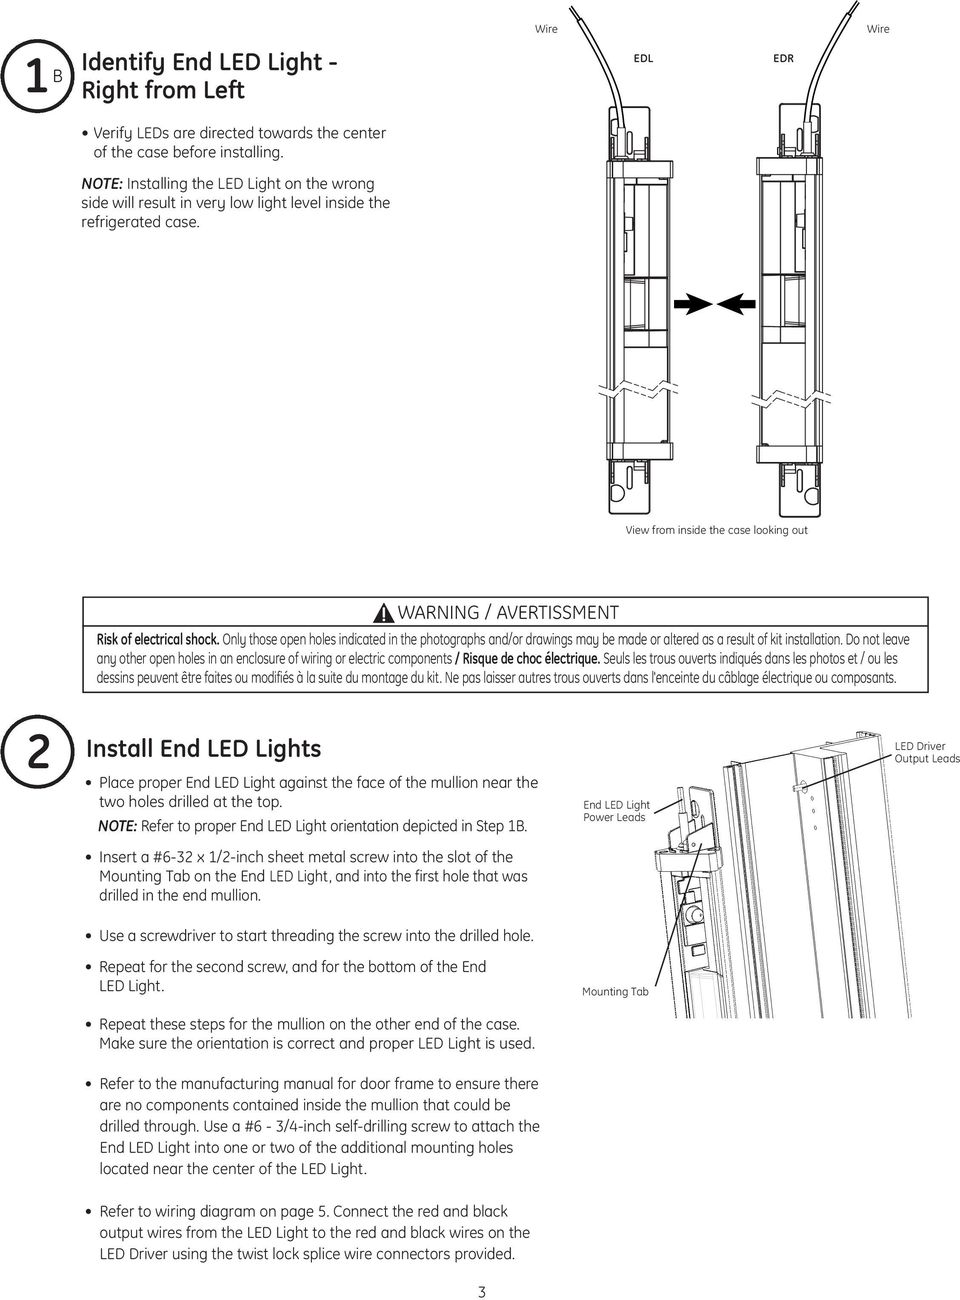 Immersion Oem Installation Guide Ge Lighting Imagination At Work Wiring Diagram For A Led Driver Only Those Open Holes Indicated In The Photographs And Or Drawings May Be Made